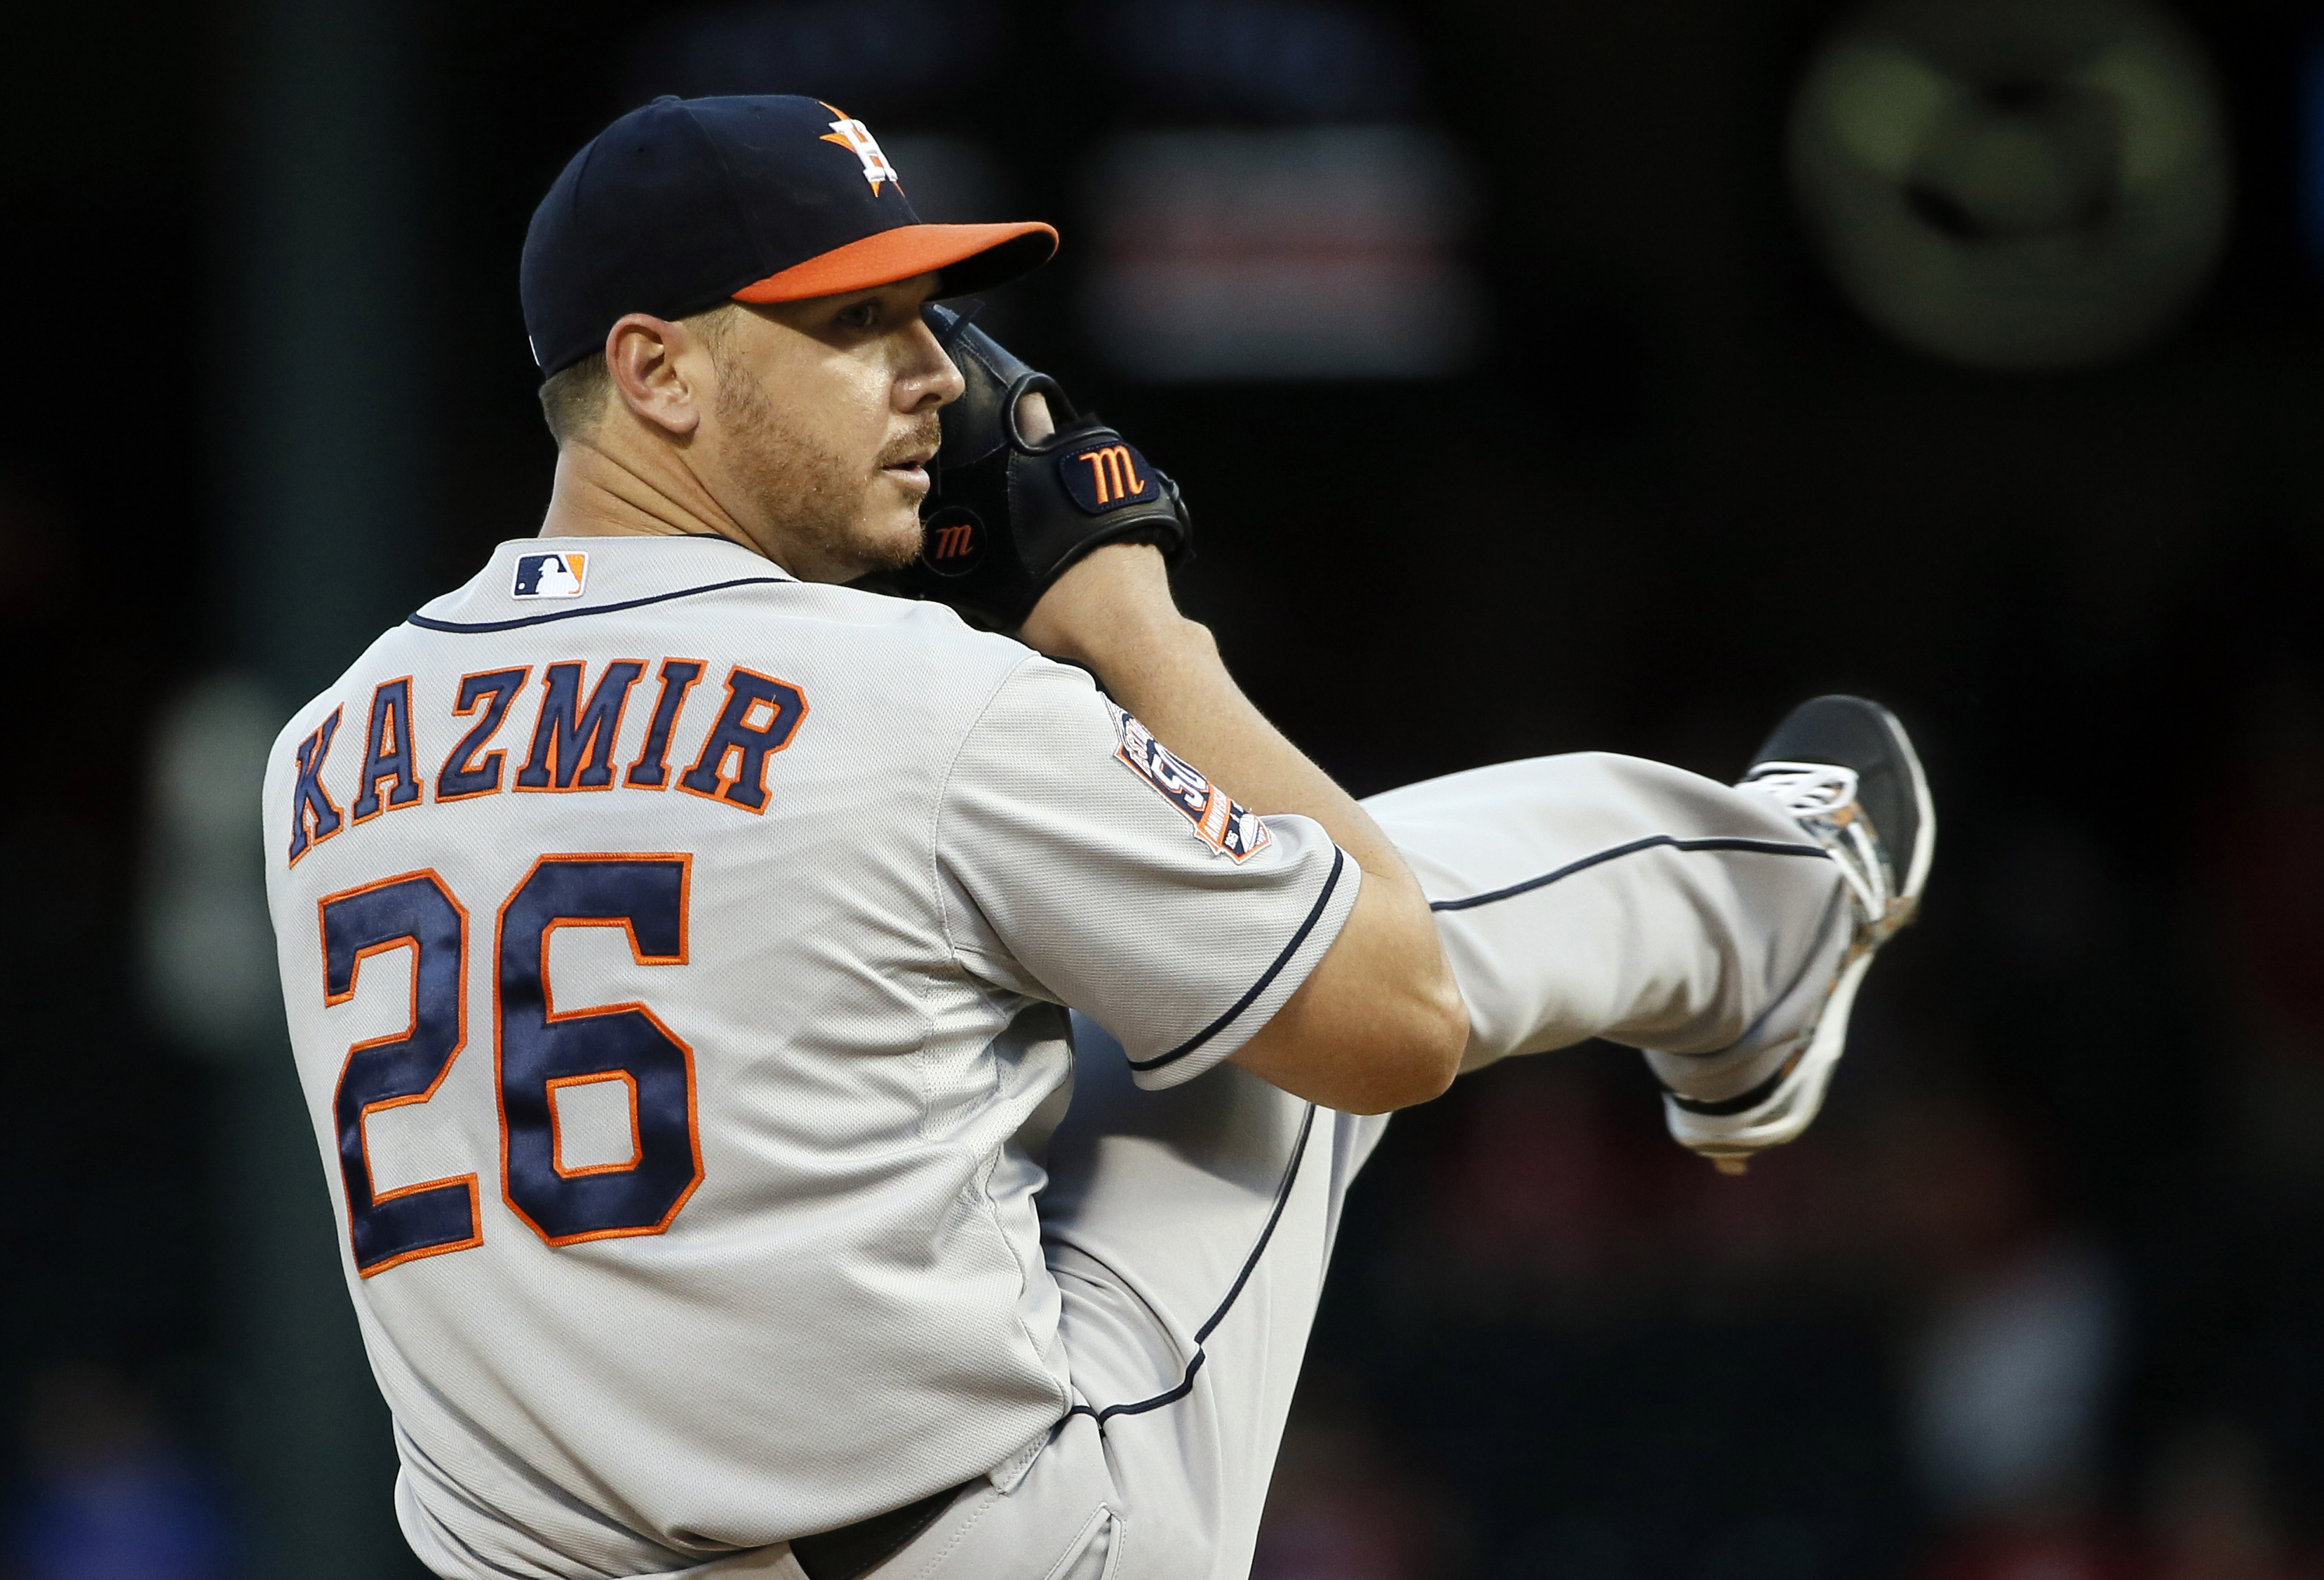 FILE - In this Sept. 14, 2015, file photo, Houston Astros starting pitcher Scott Kazmir (26) works against the Texas Rangers during a baseball game in Arlington, Texas. Kazmir has agreed to a three-year contract with the Los Angeles Dodgers, in a deal ann